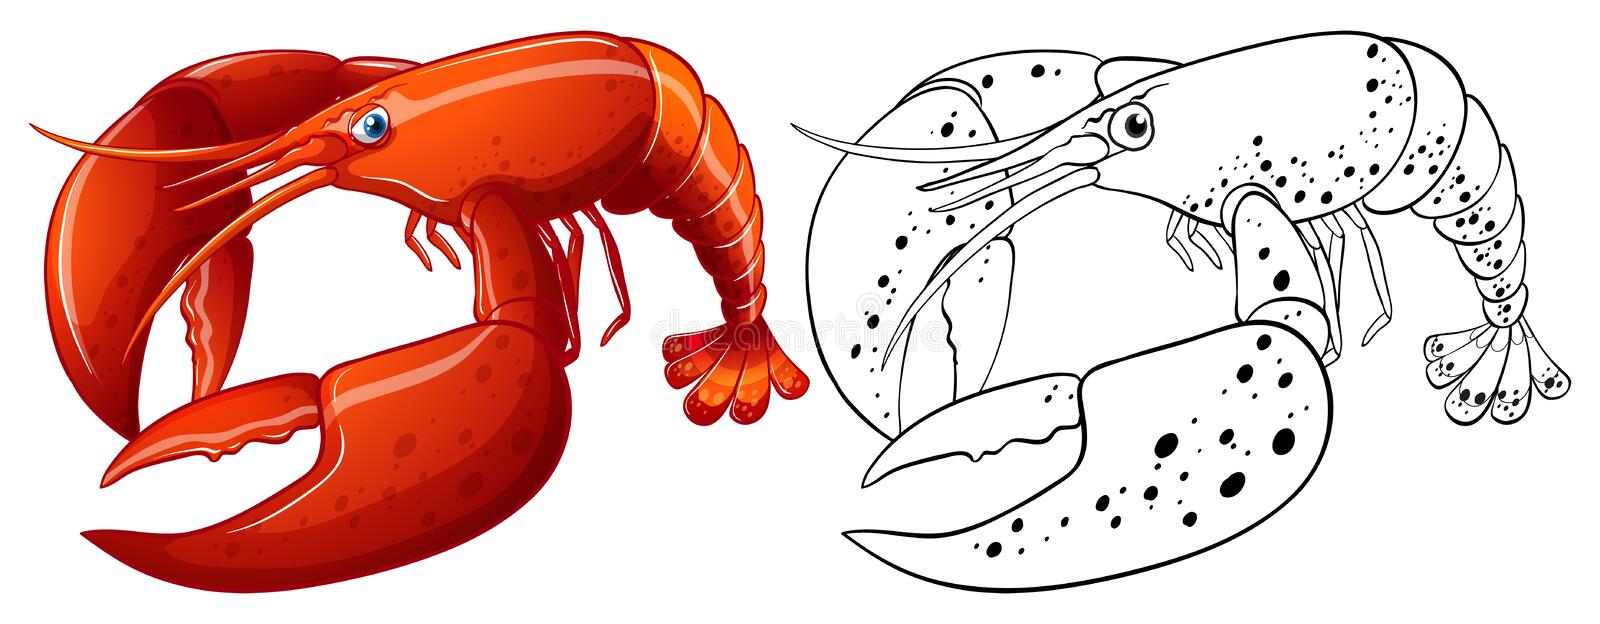 Contour animal pour le homard illustration libre de droits